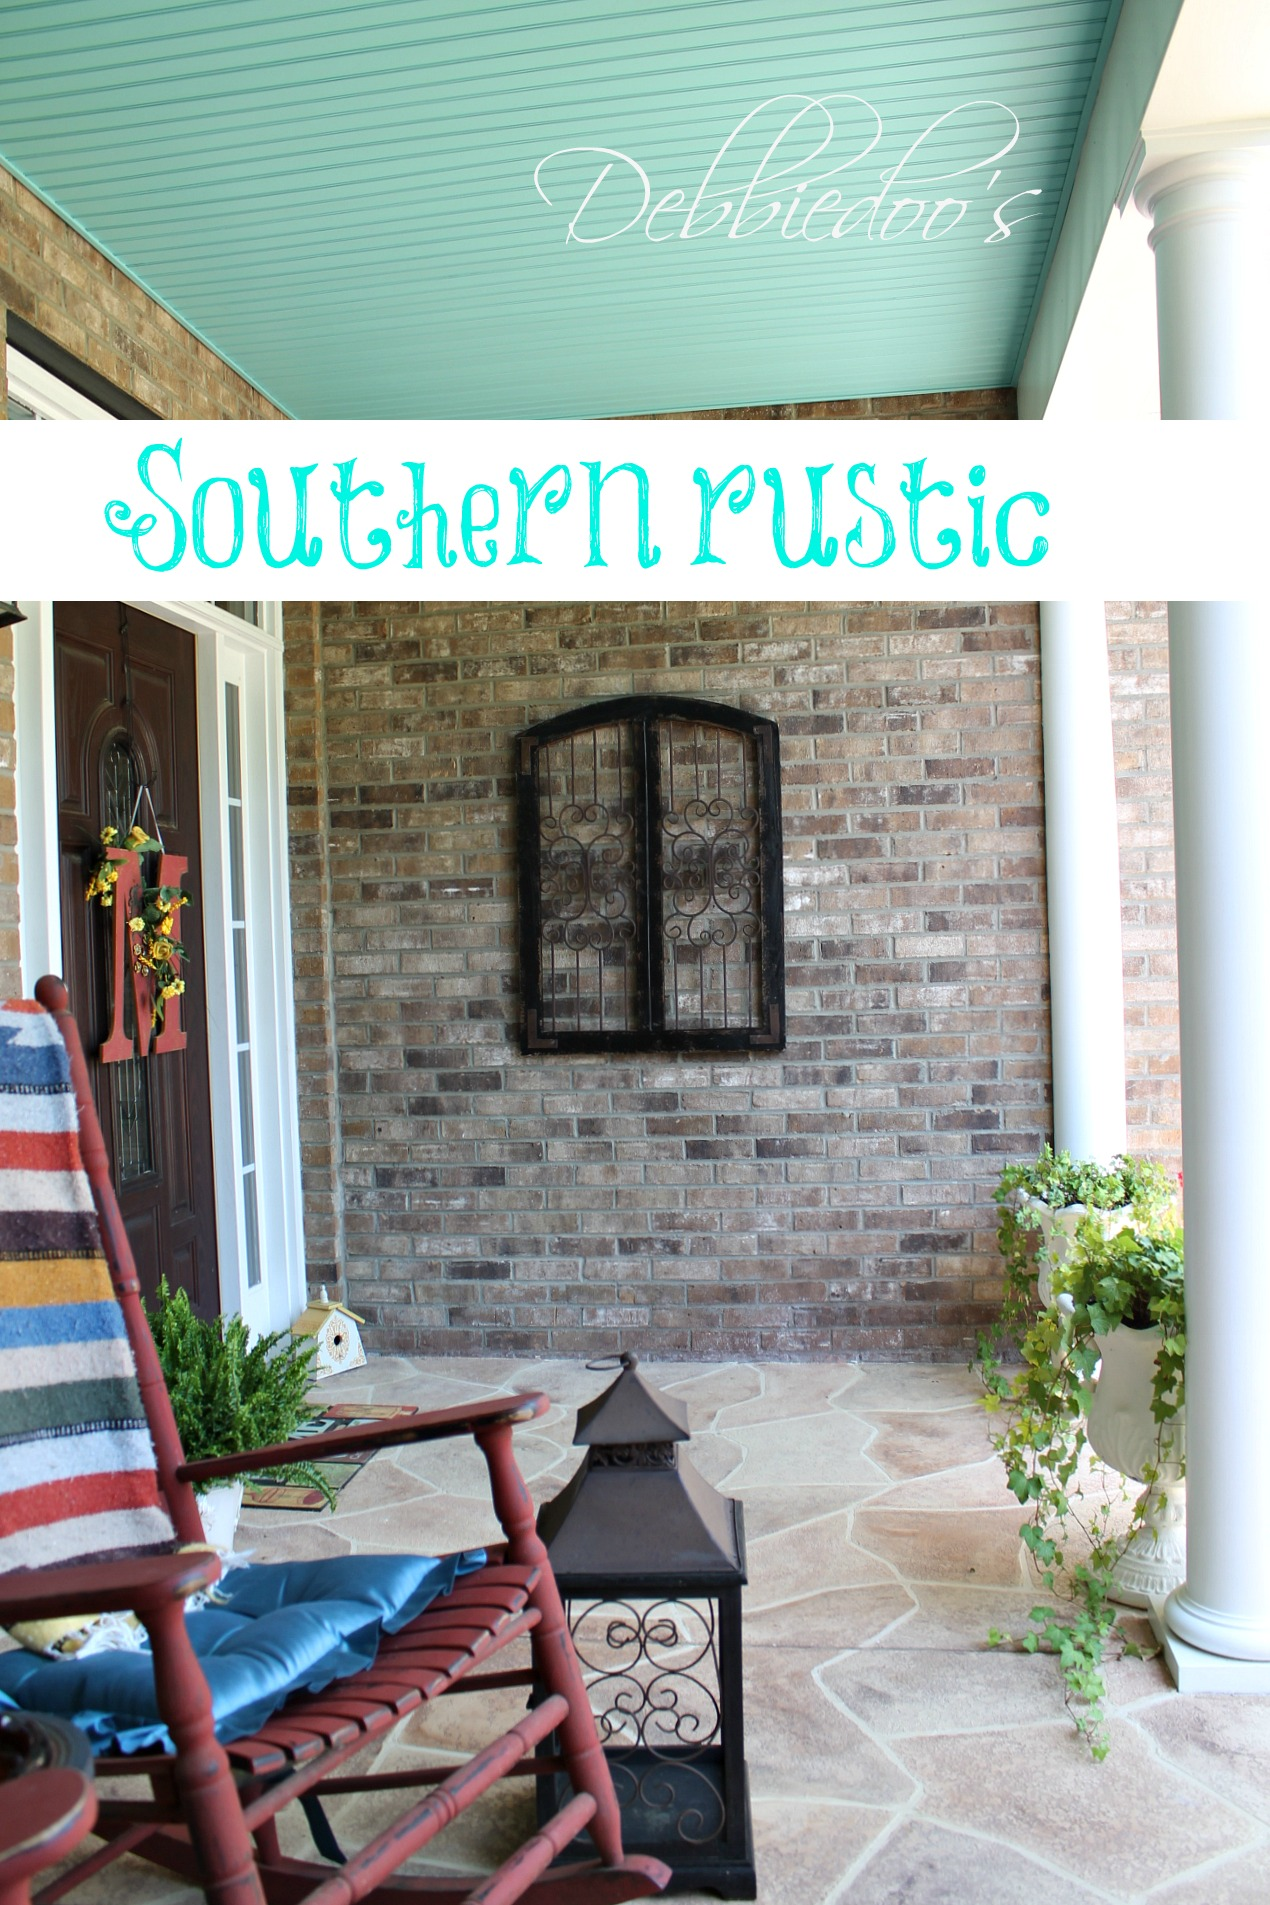 Southern rustic front porch with charm